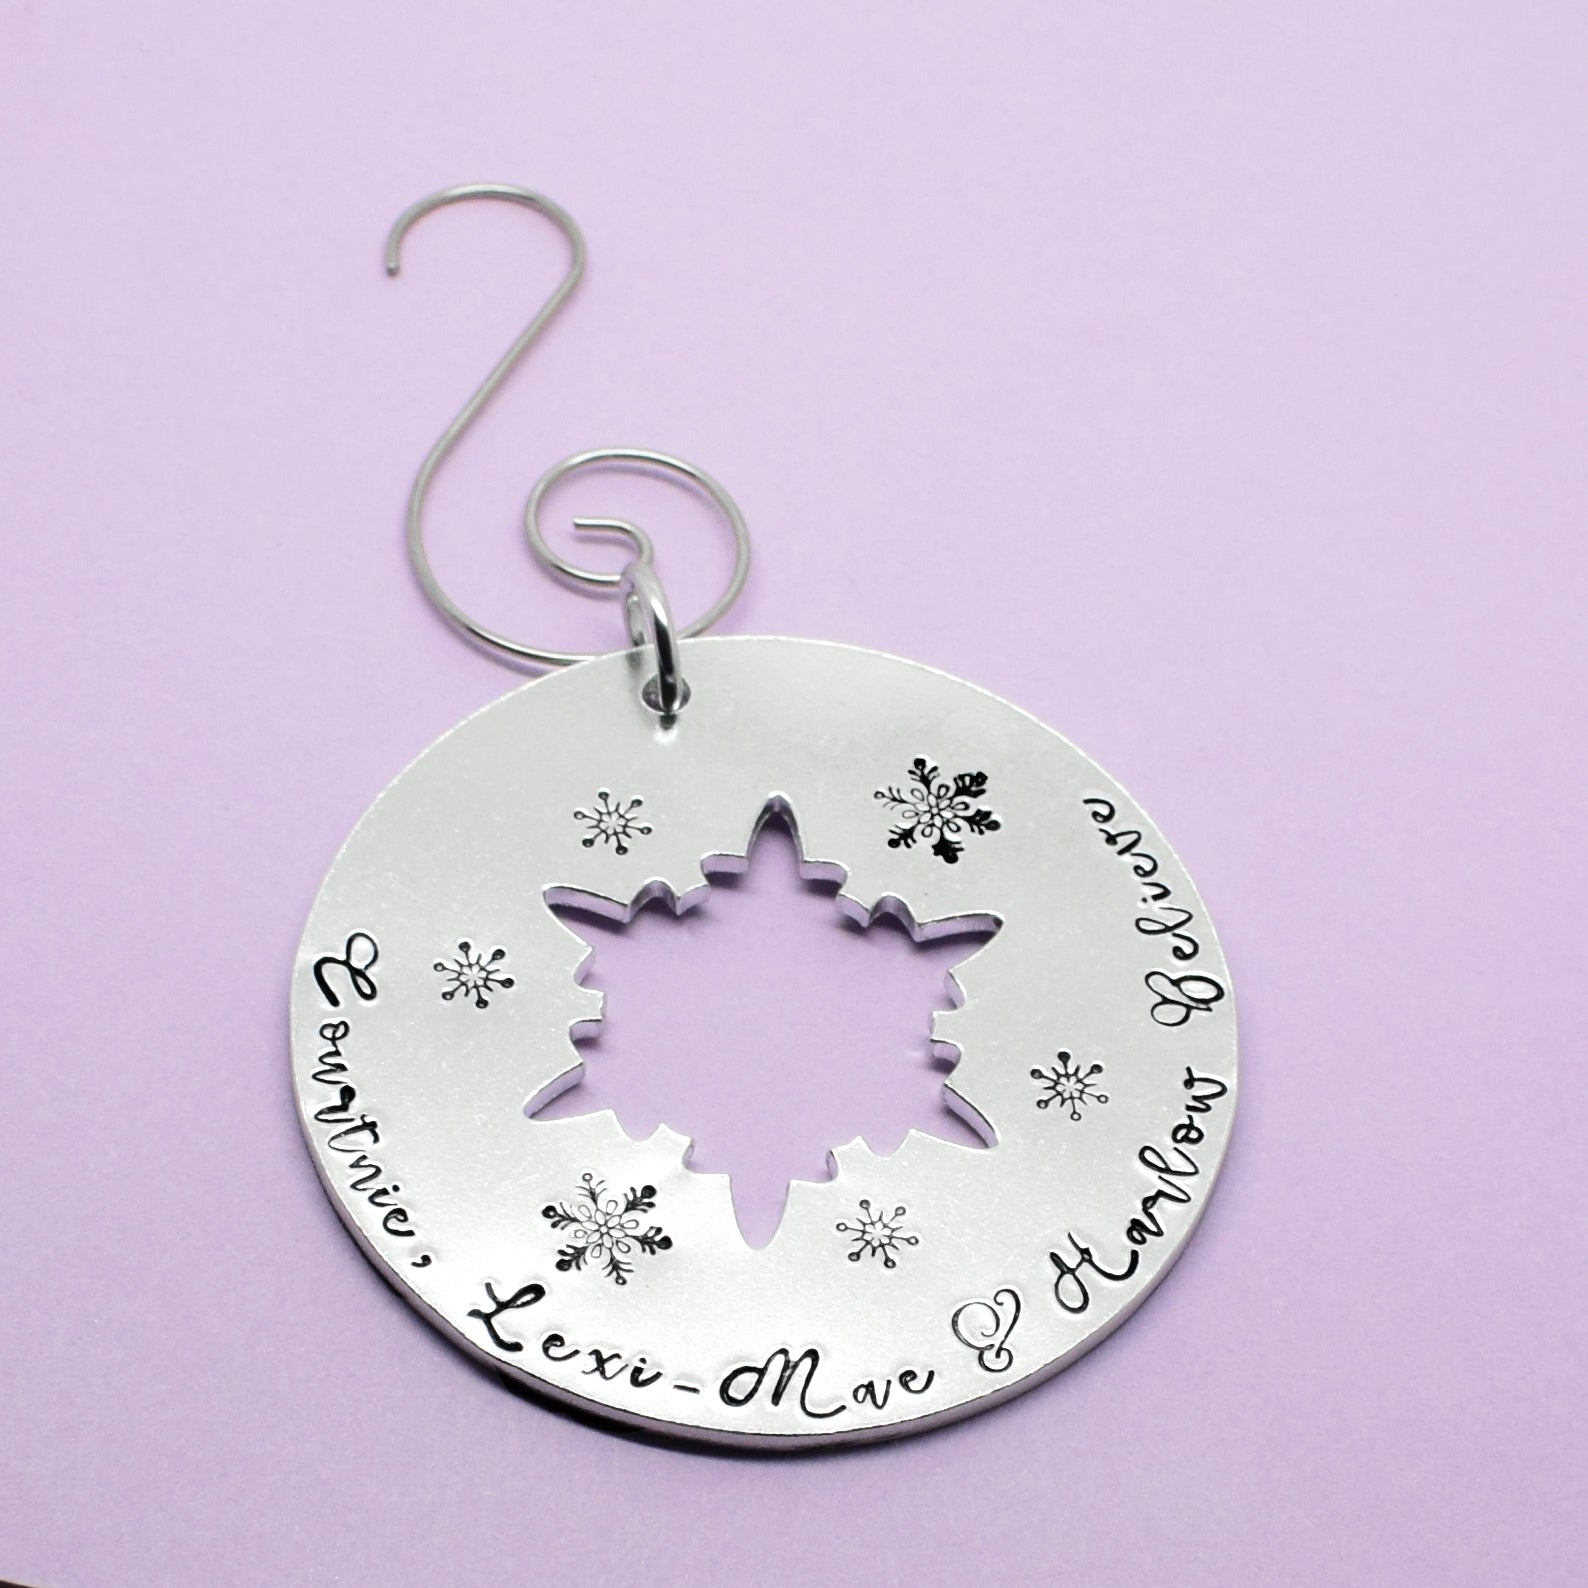 We Believe Personalised Christmas Tree Decoration, Reindeer Personalised Tree Decoration, Children's Tree Ornament, I Believe Tree Ornament